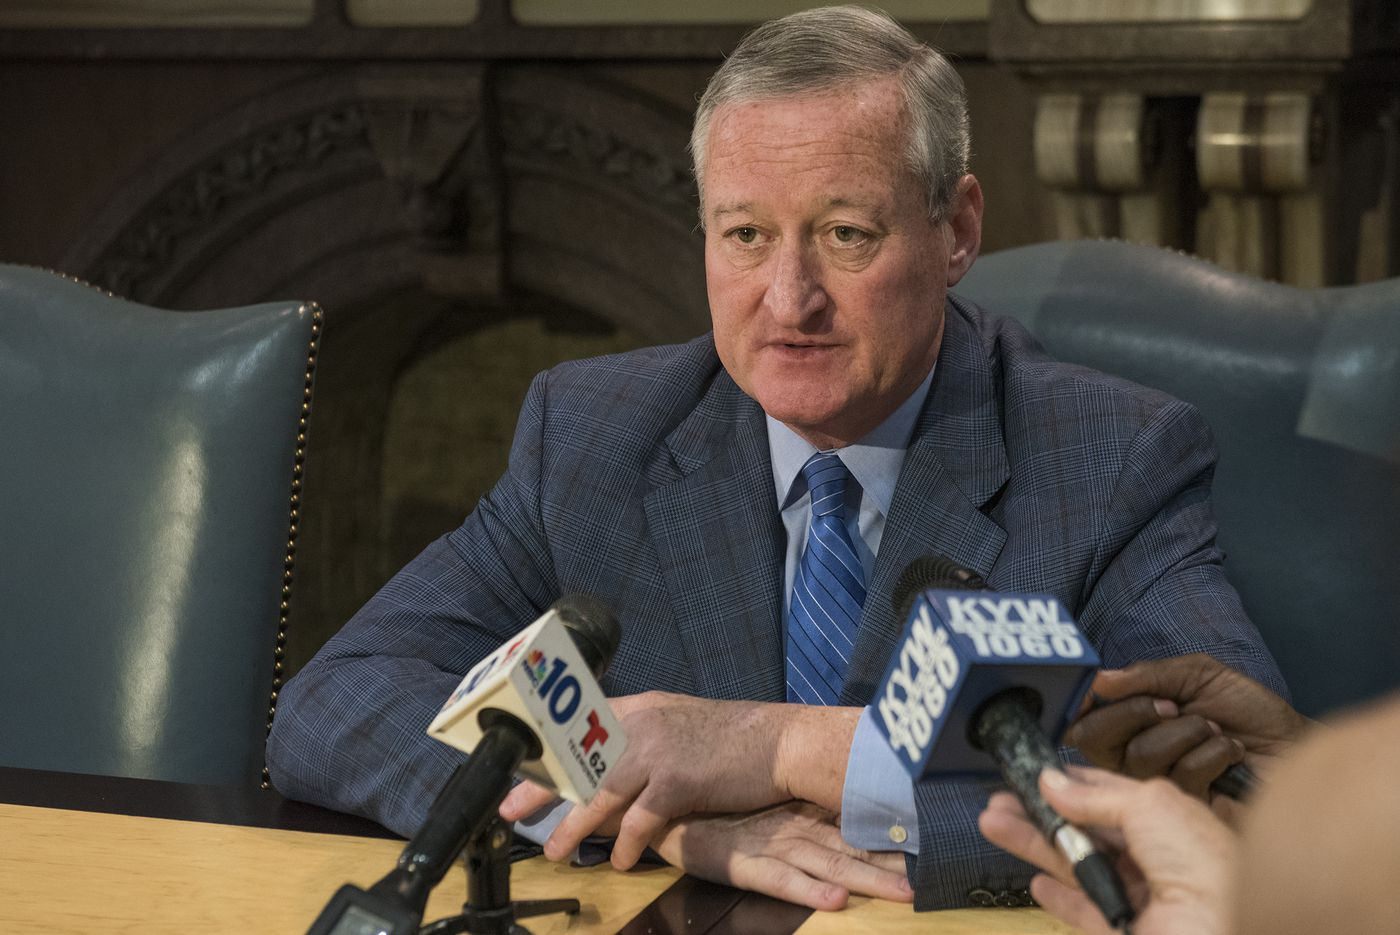 Four city labor contracts, 1 pension fund and a plan to close a $6 billion gap